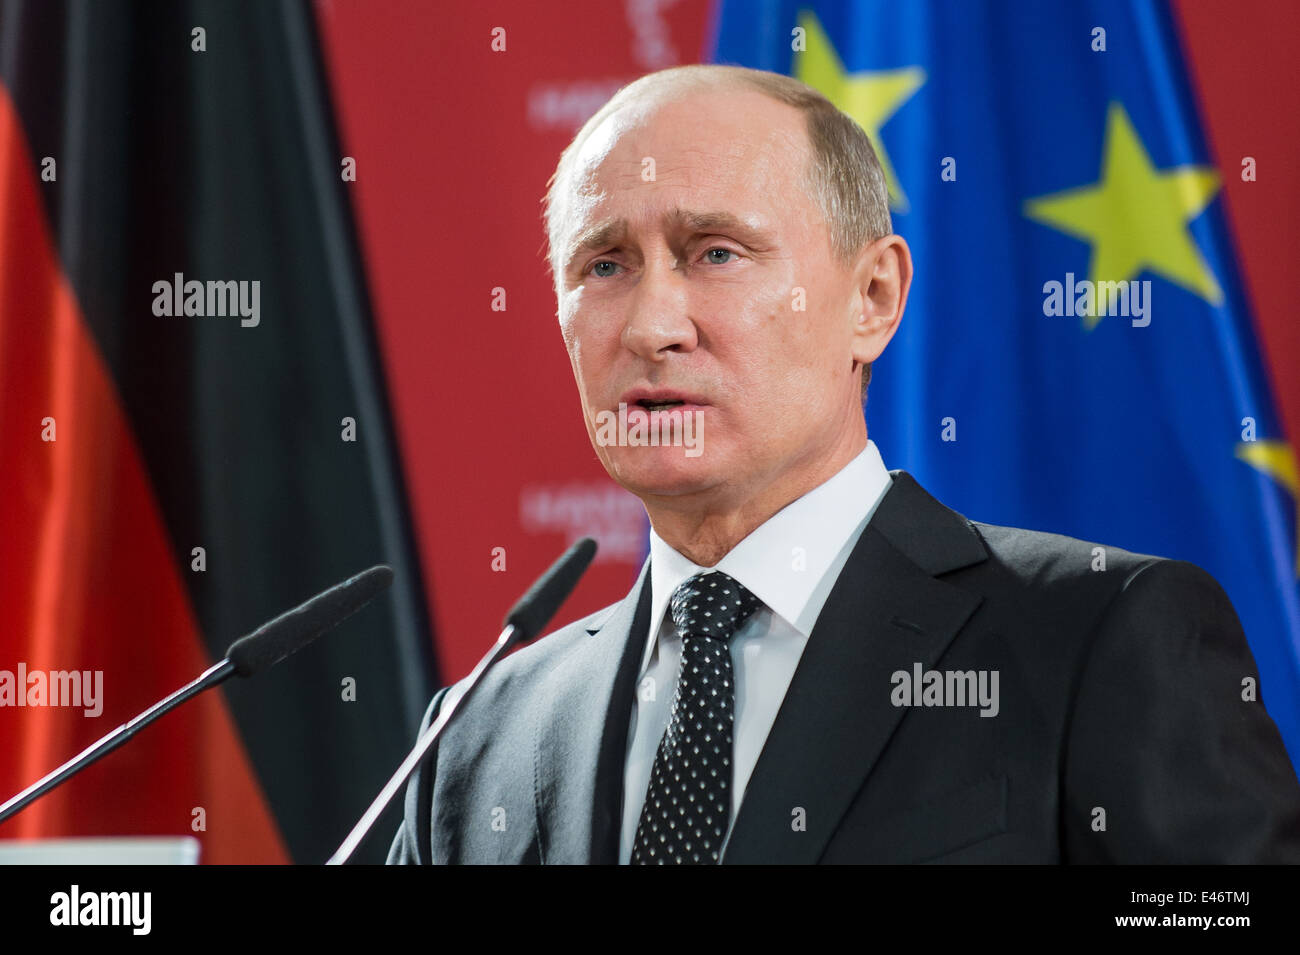 Berlin, Germany, Vladimir Putin, President of the Russian Federation - Stock Image